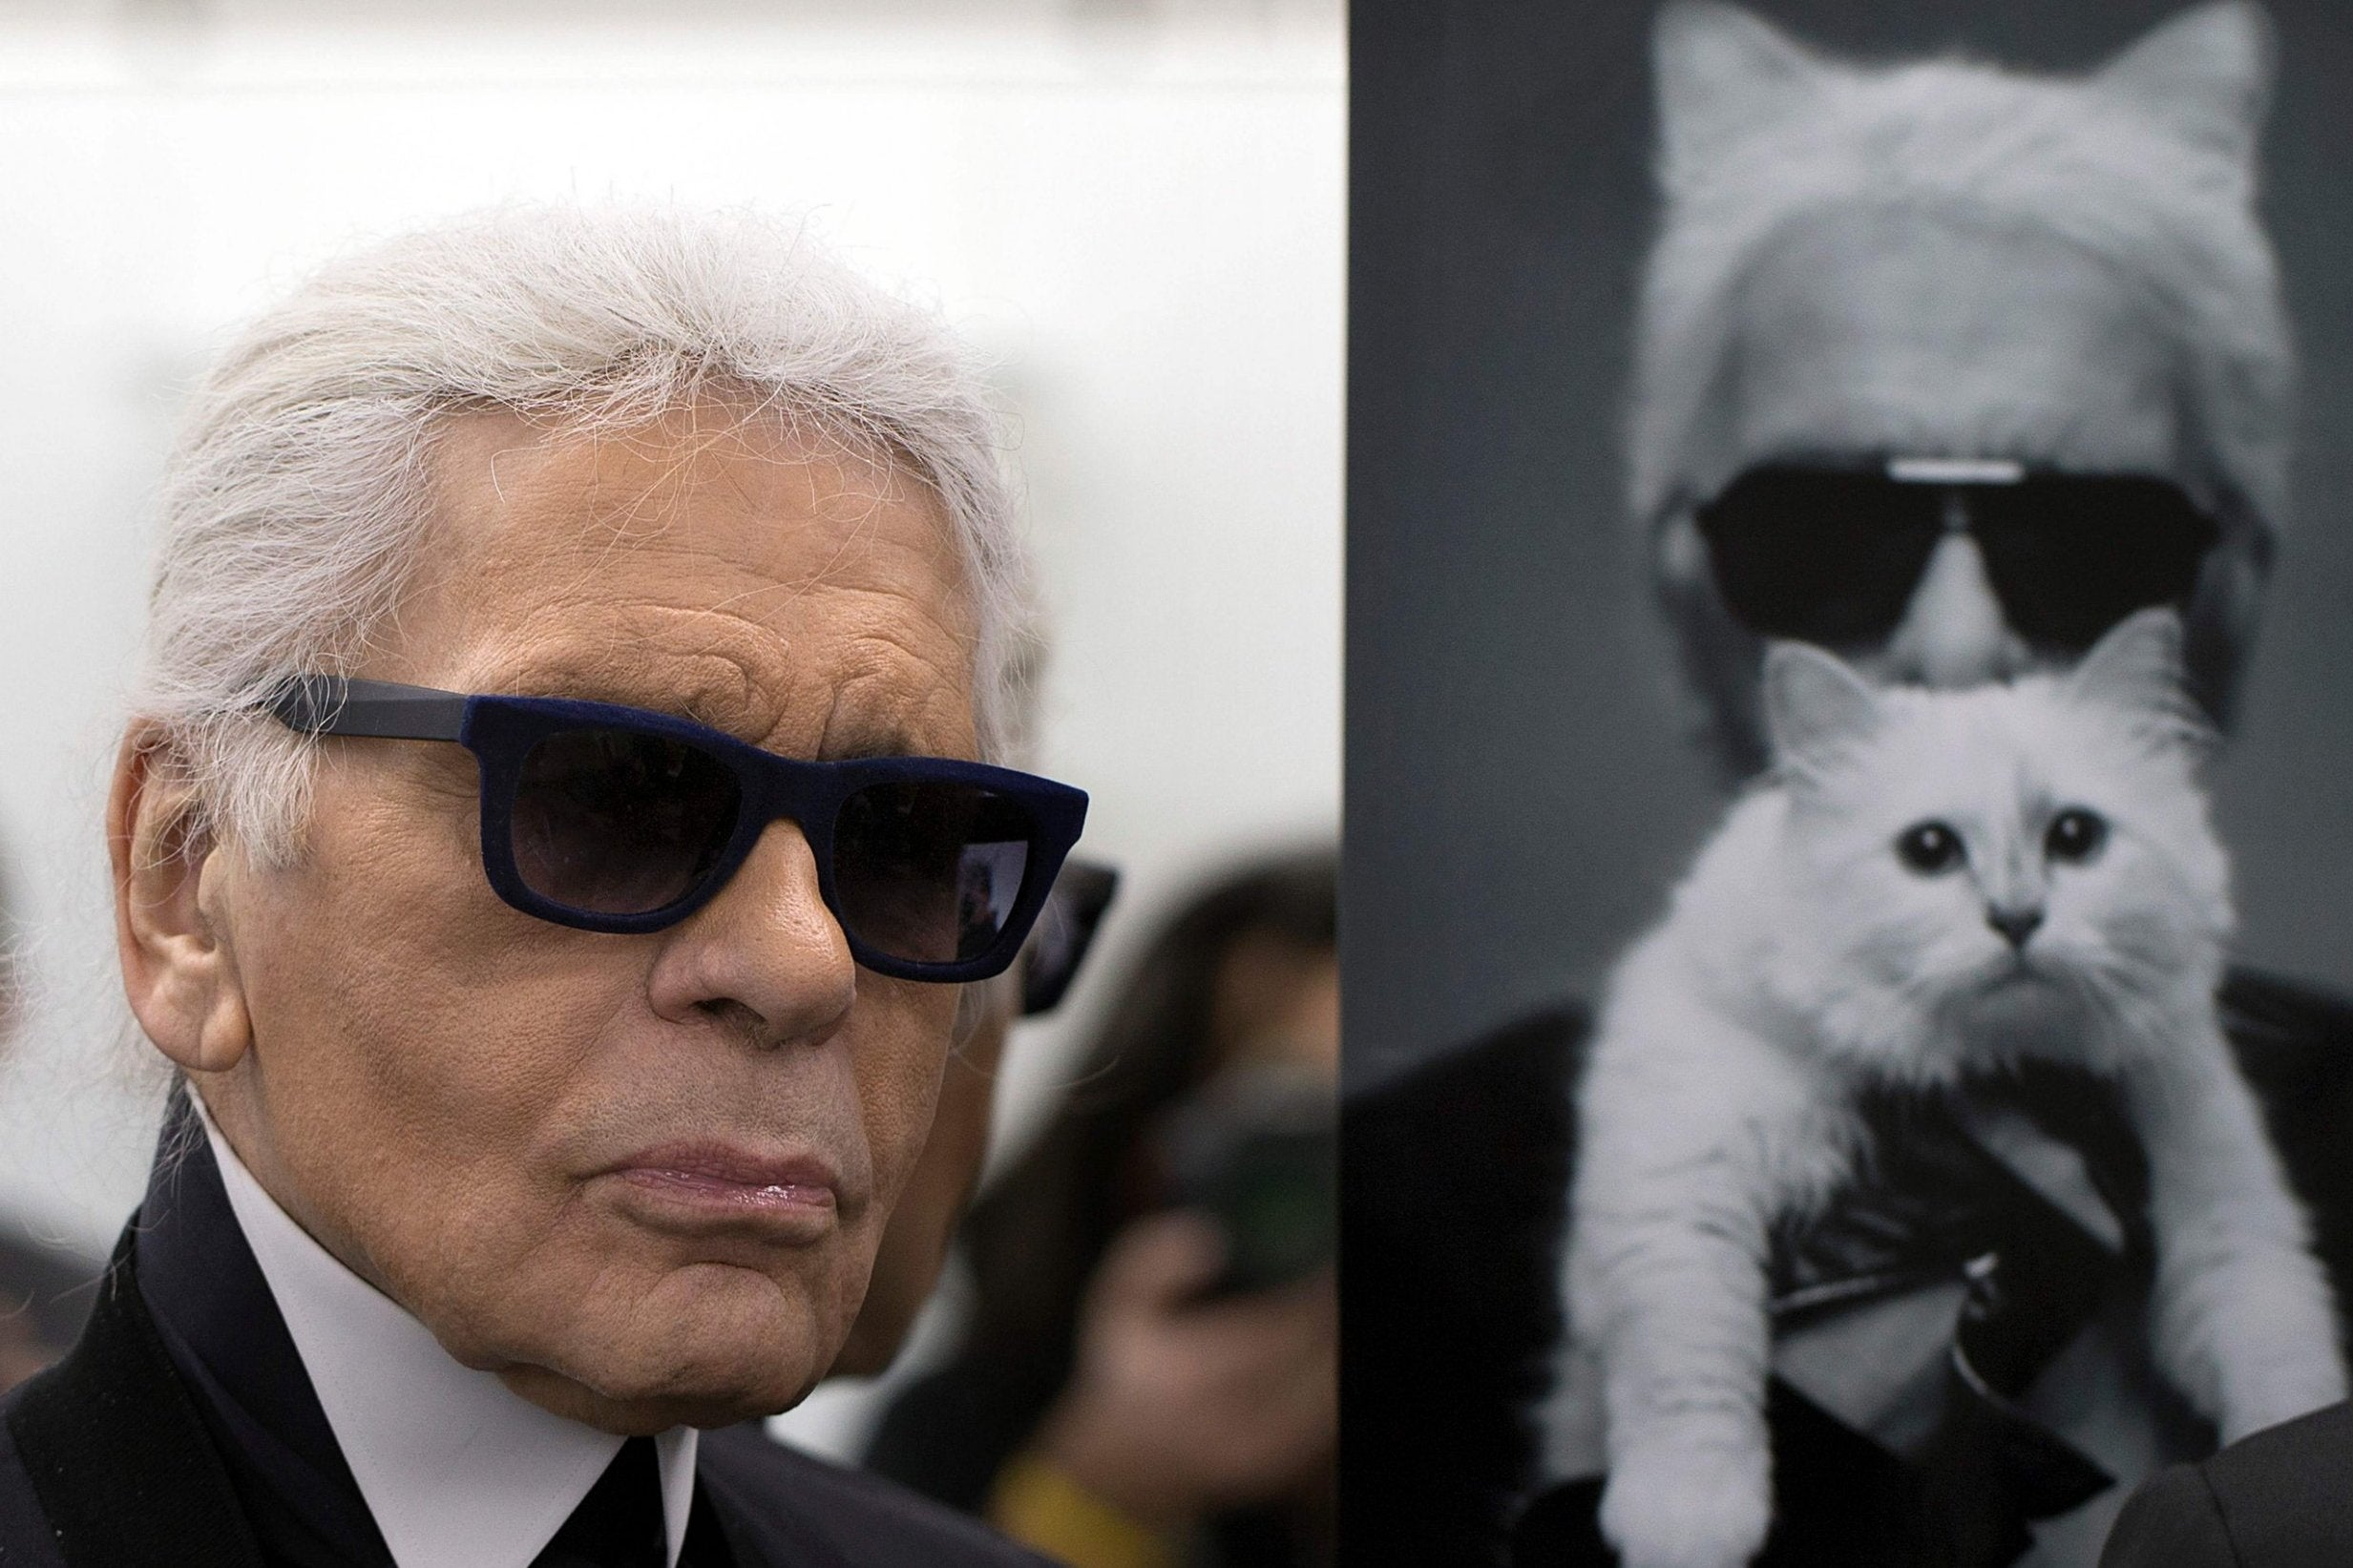 Karl Lagerfeld's famous cat Choupette 'to inherit' £150m fortune